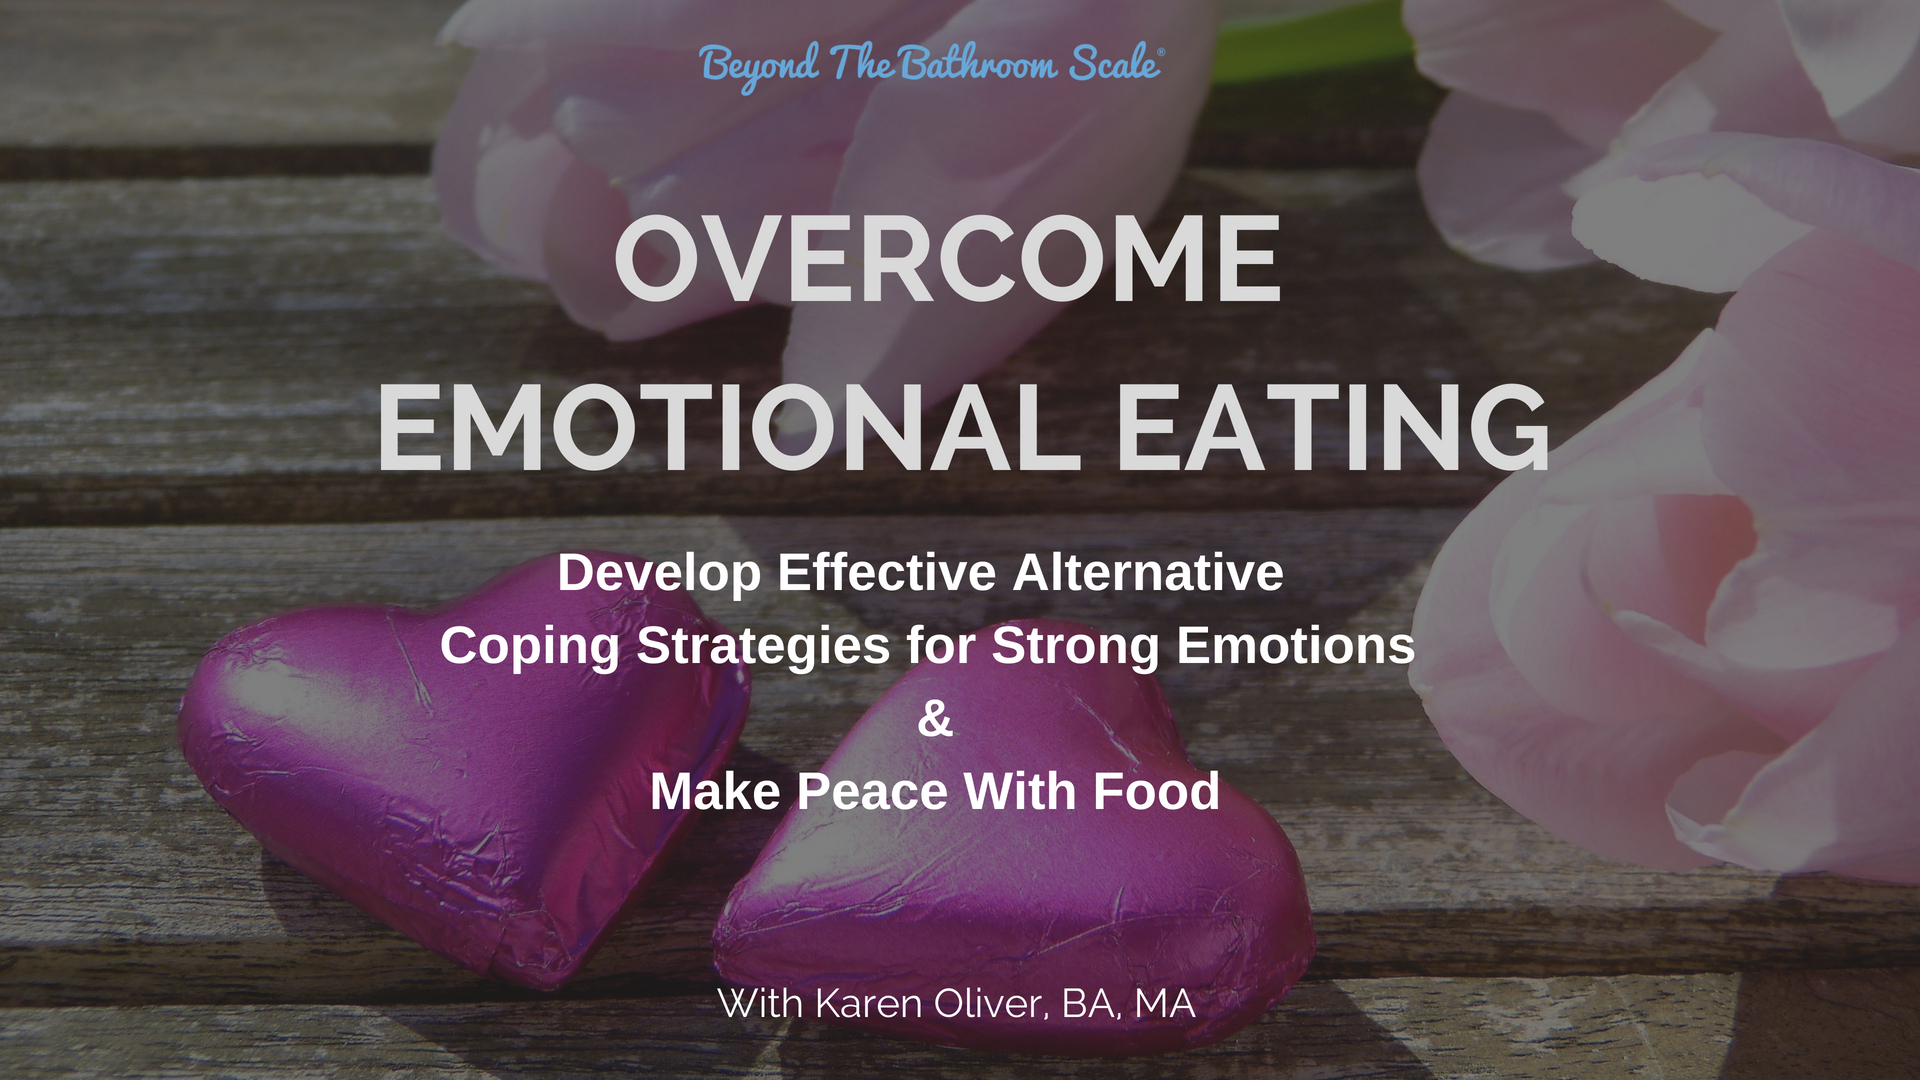 Overcome Emotional Eating Beyond The Bathroom Scale Courses